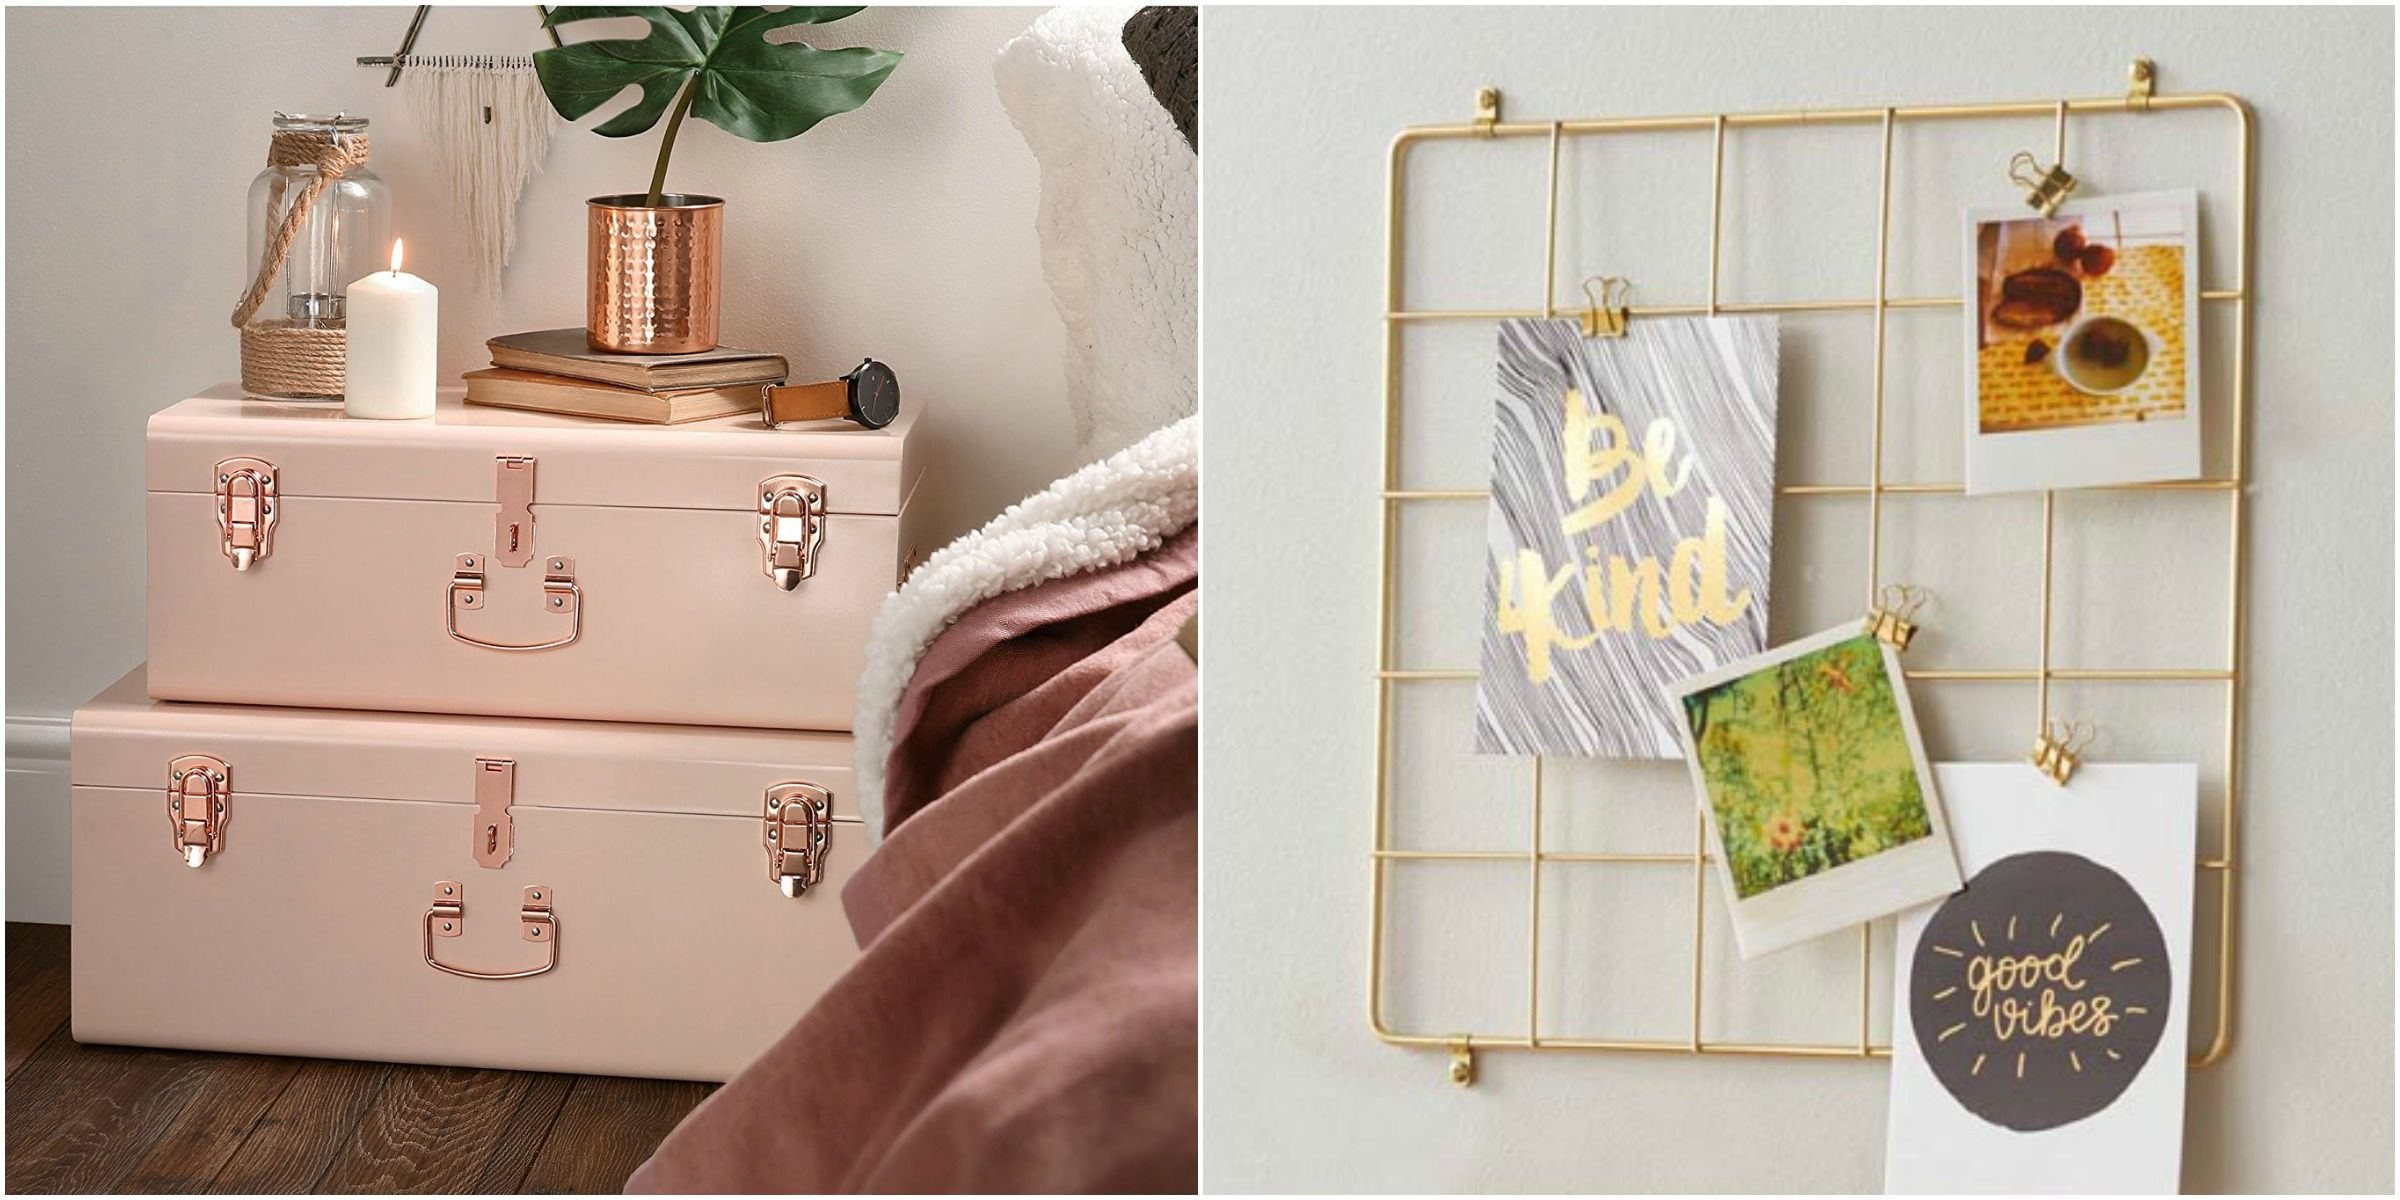 13 Dorm Room Ideas - Decor & Storage Items for College Dorm Rooms